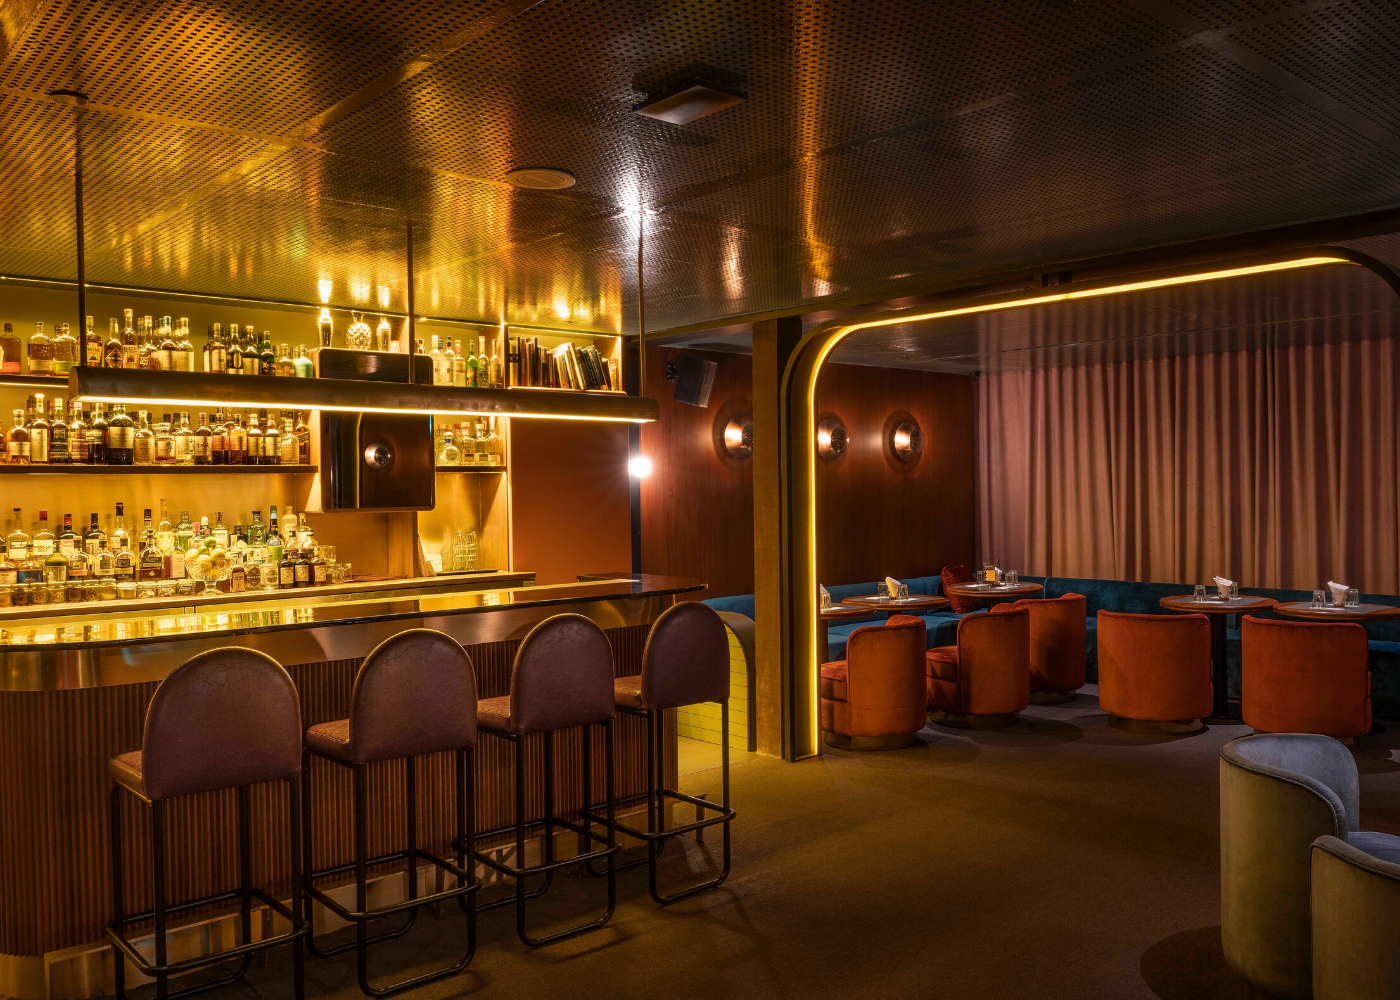 The list is out: Jigger & Pony takes the coveted #1 spot at Asia's 50 Best Bars 2020